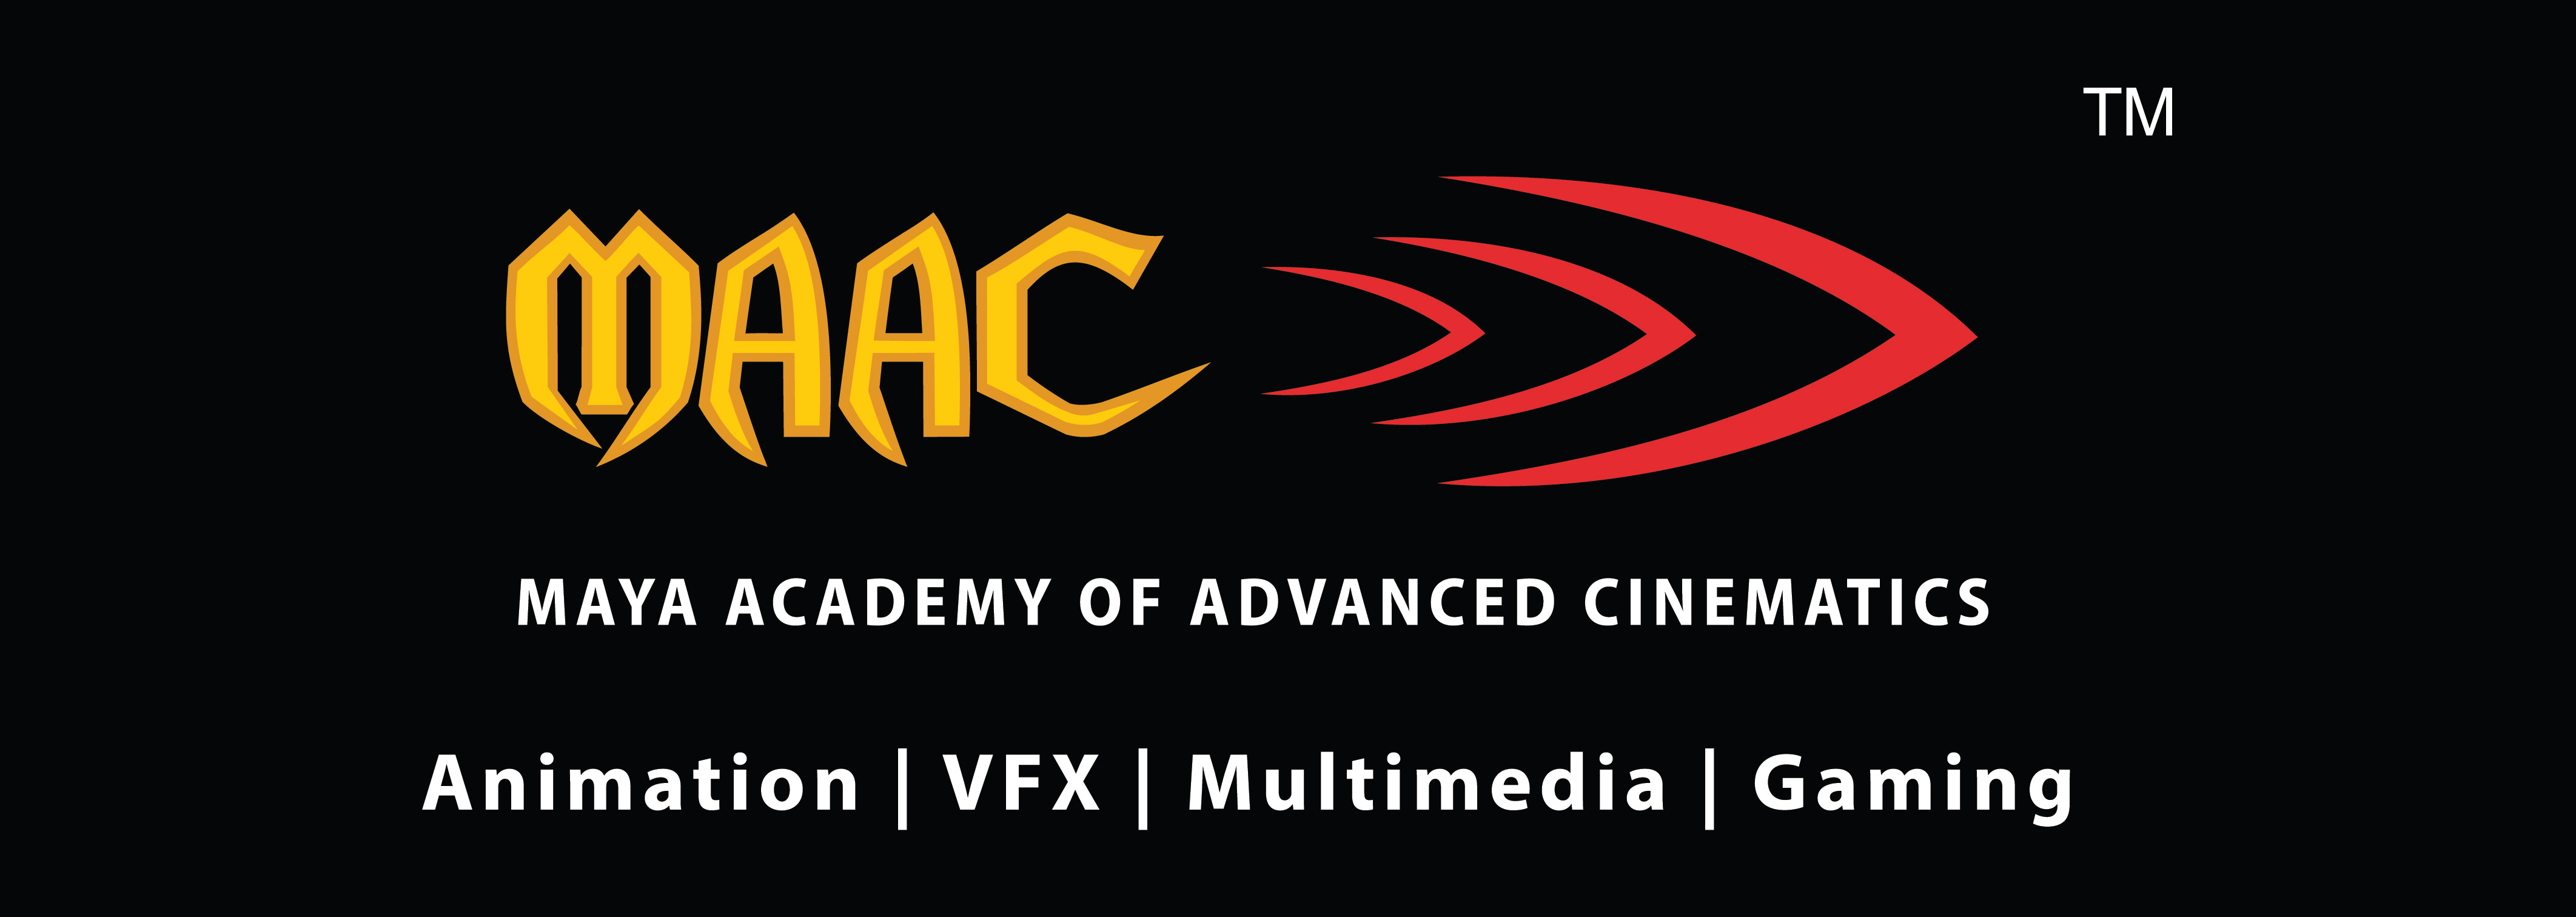 MAAC Kukatpally- Animation 2D & 3D, VFX, Multimedia, Gaming and Architectural Design Training Institute